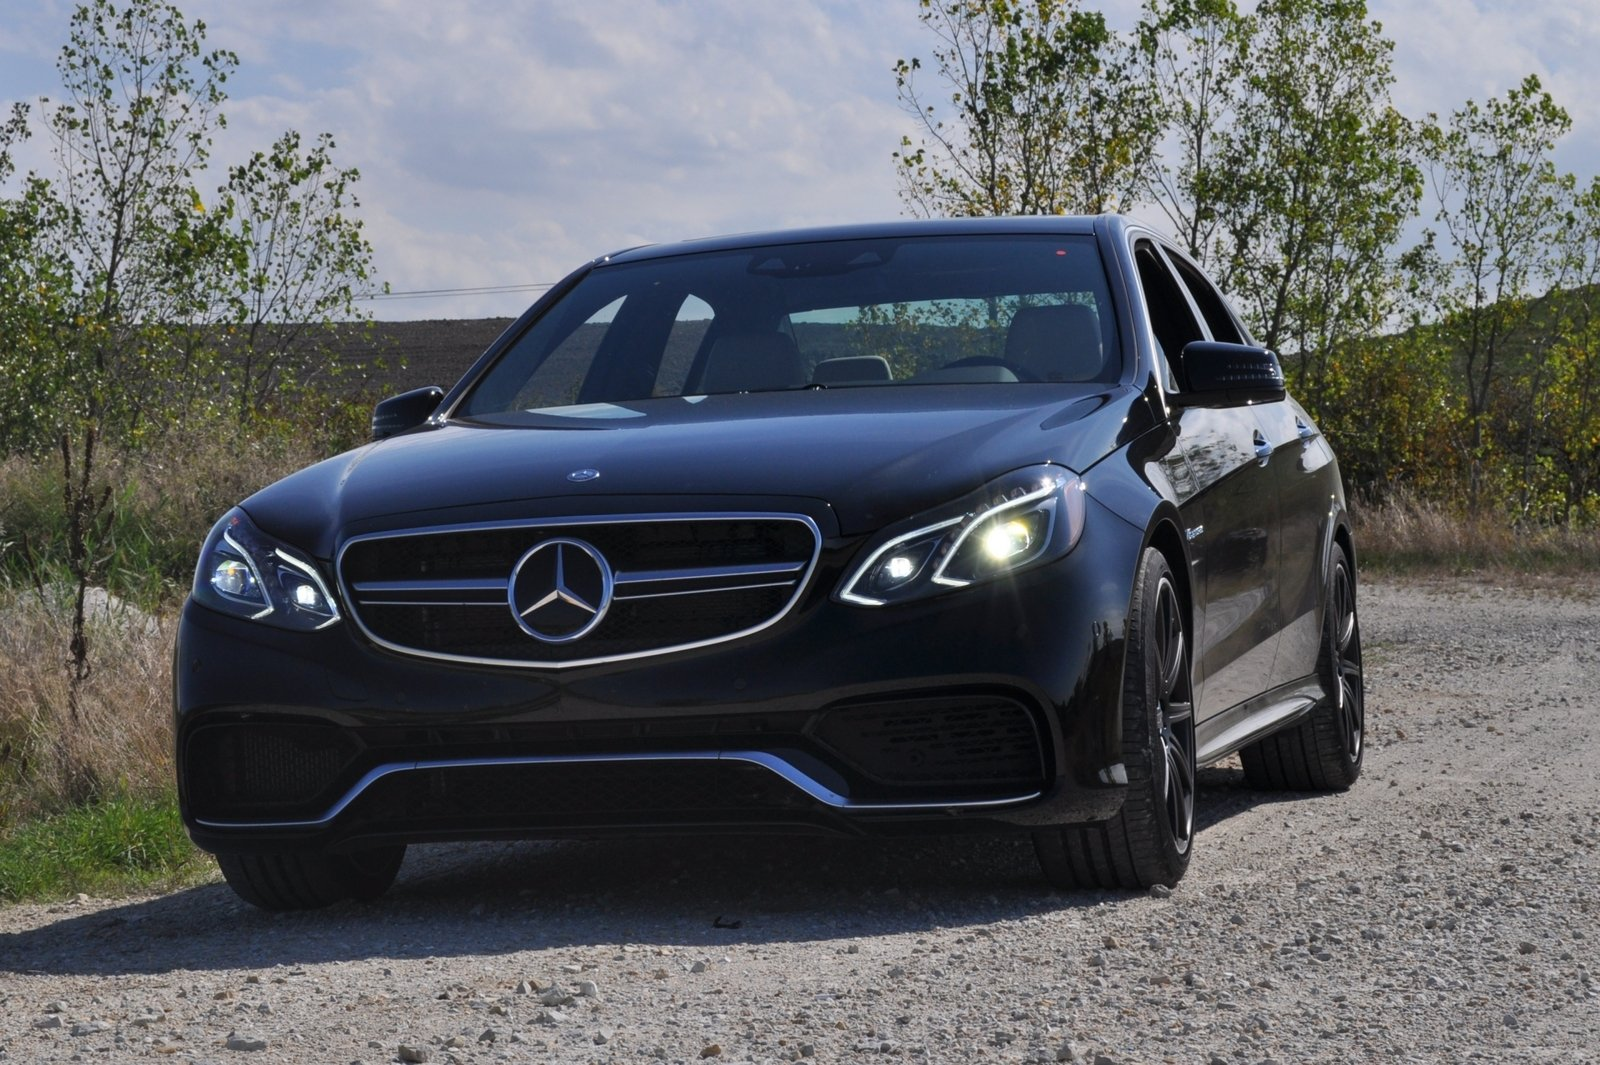 2014 mercedes benz e63 amg s model driven review top speed for How much is a 2014 mercedes benz